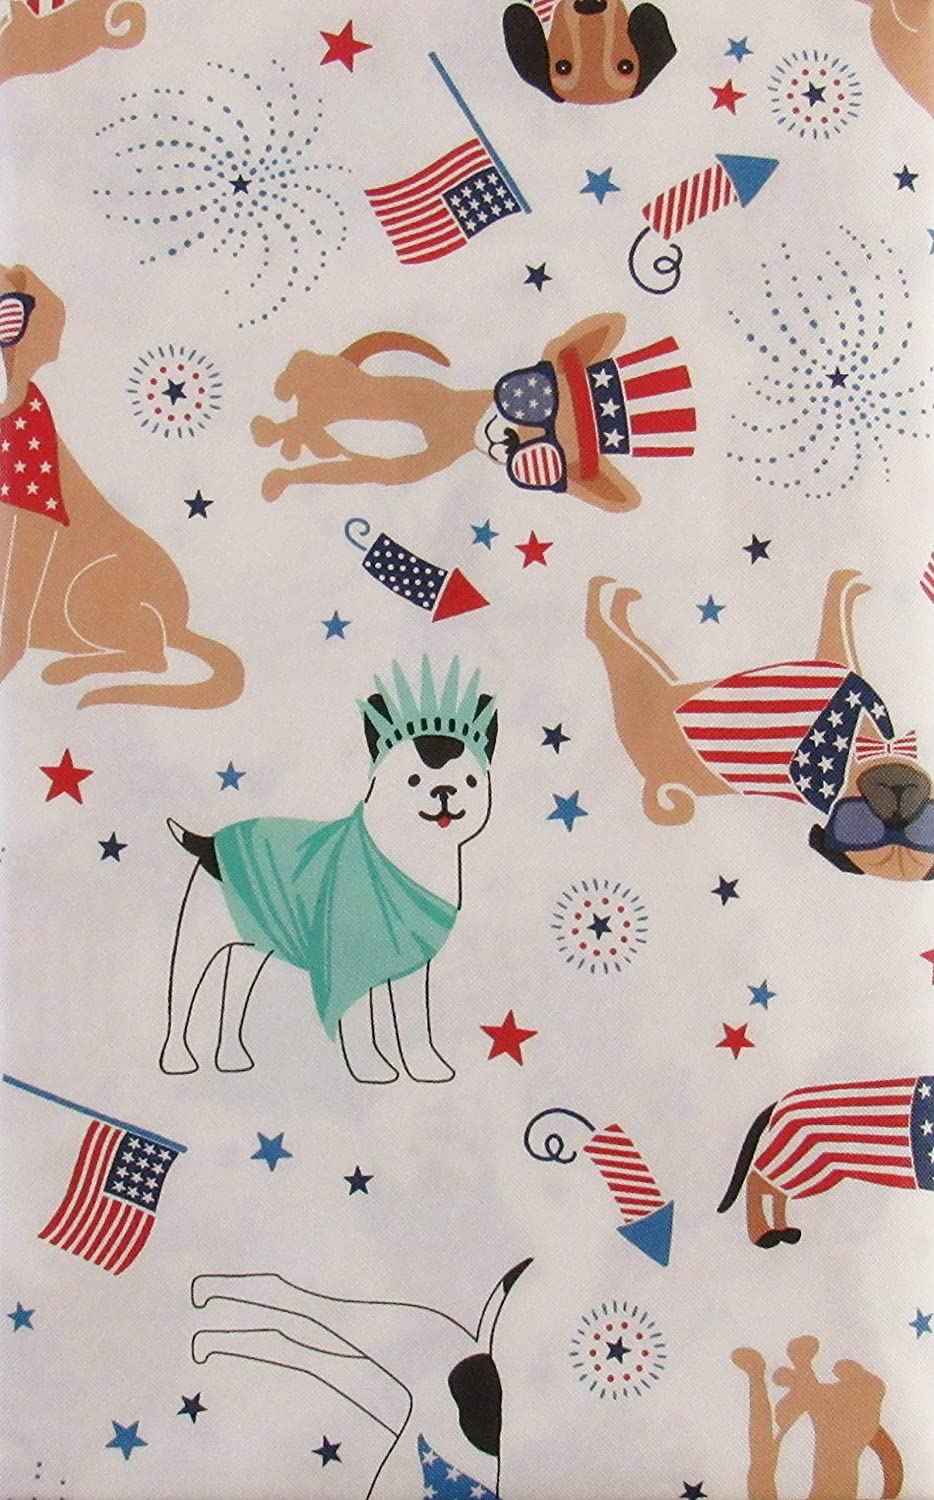 Patriotic Pooches Flags and Fireworks Vinyl Flannel Back Tablecloth 60